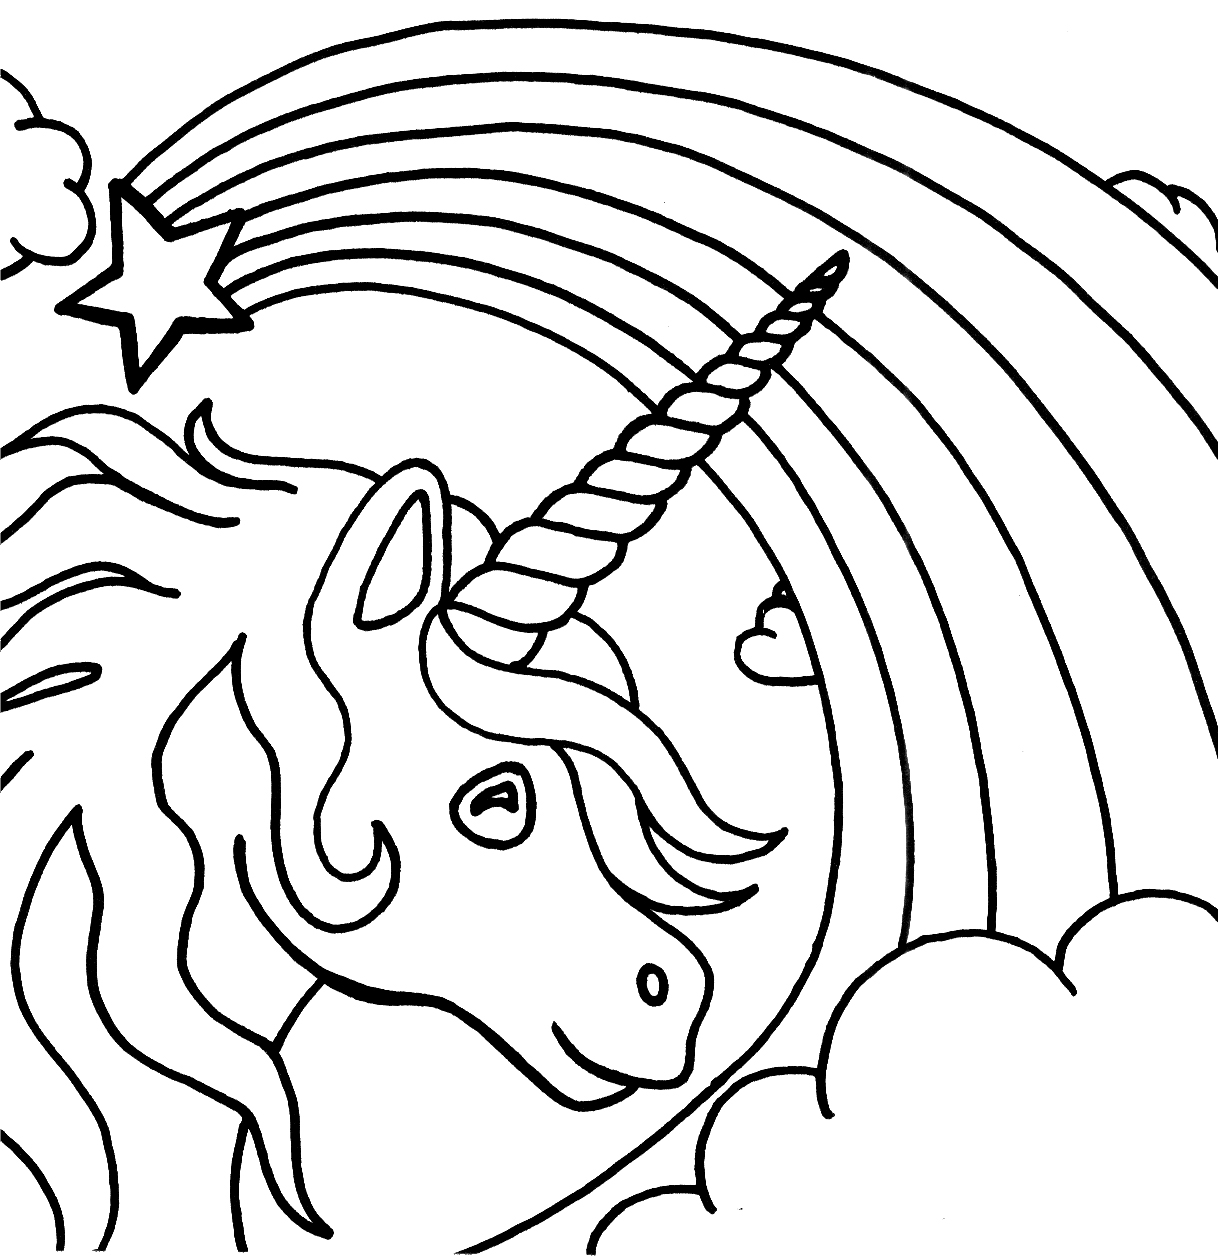 kids unicorn coloring pages unicorn coloring page for kids stock illustration kids unicorn coloring pages